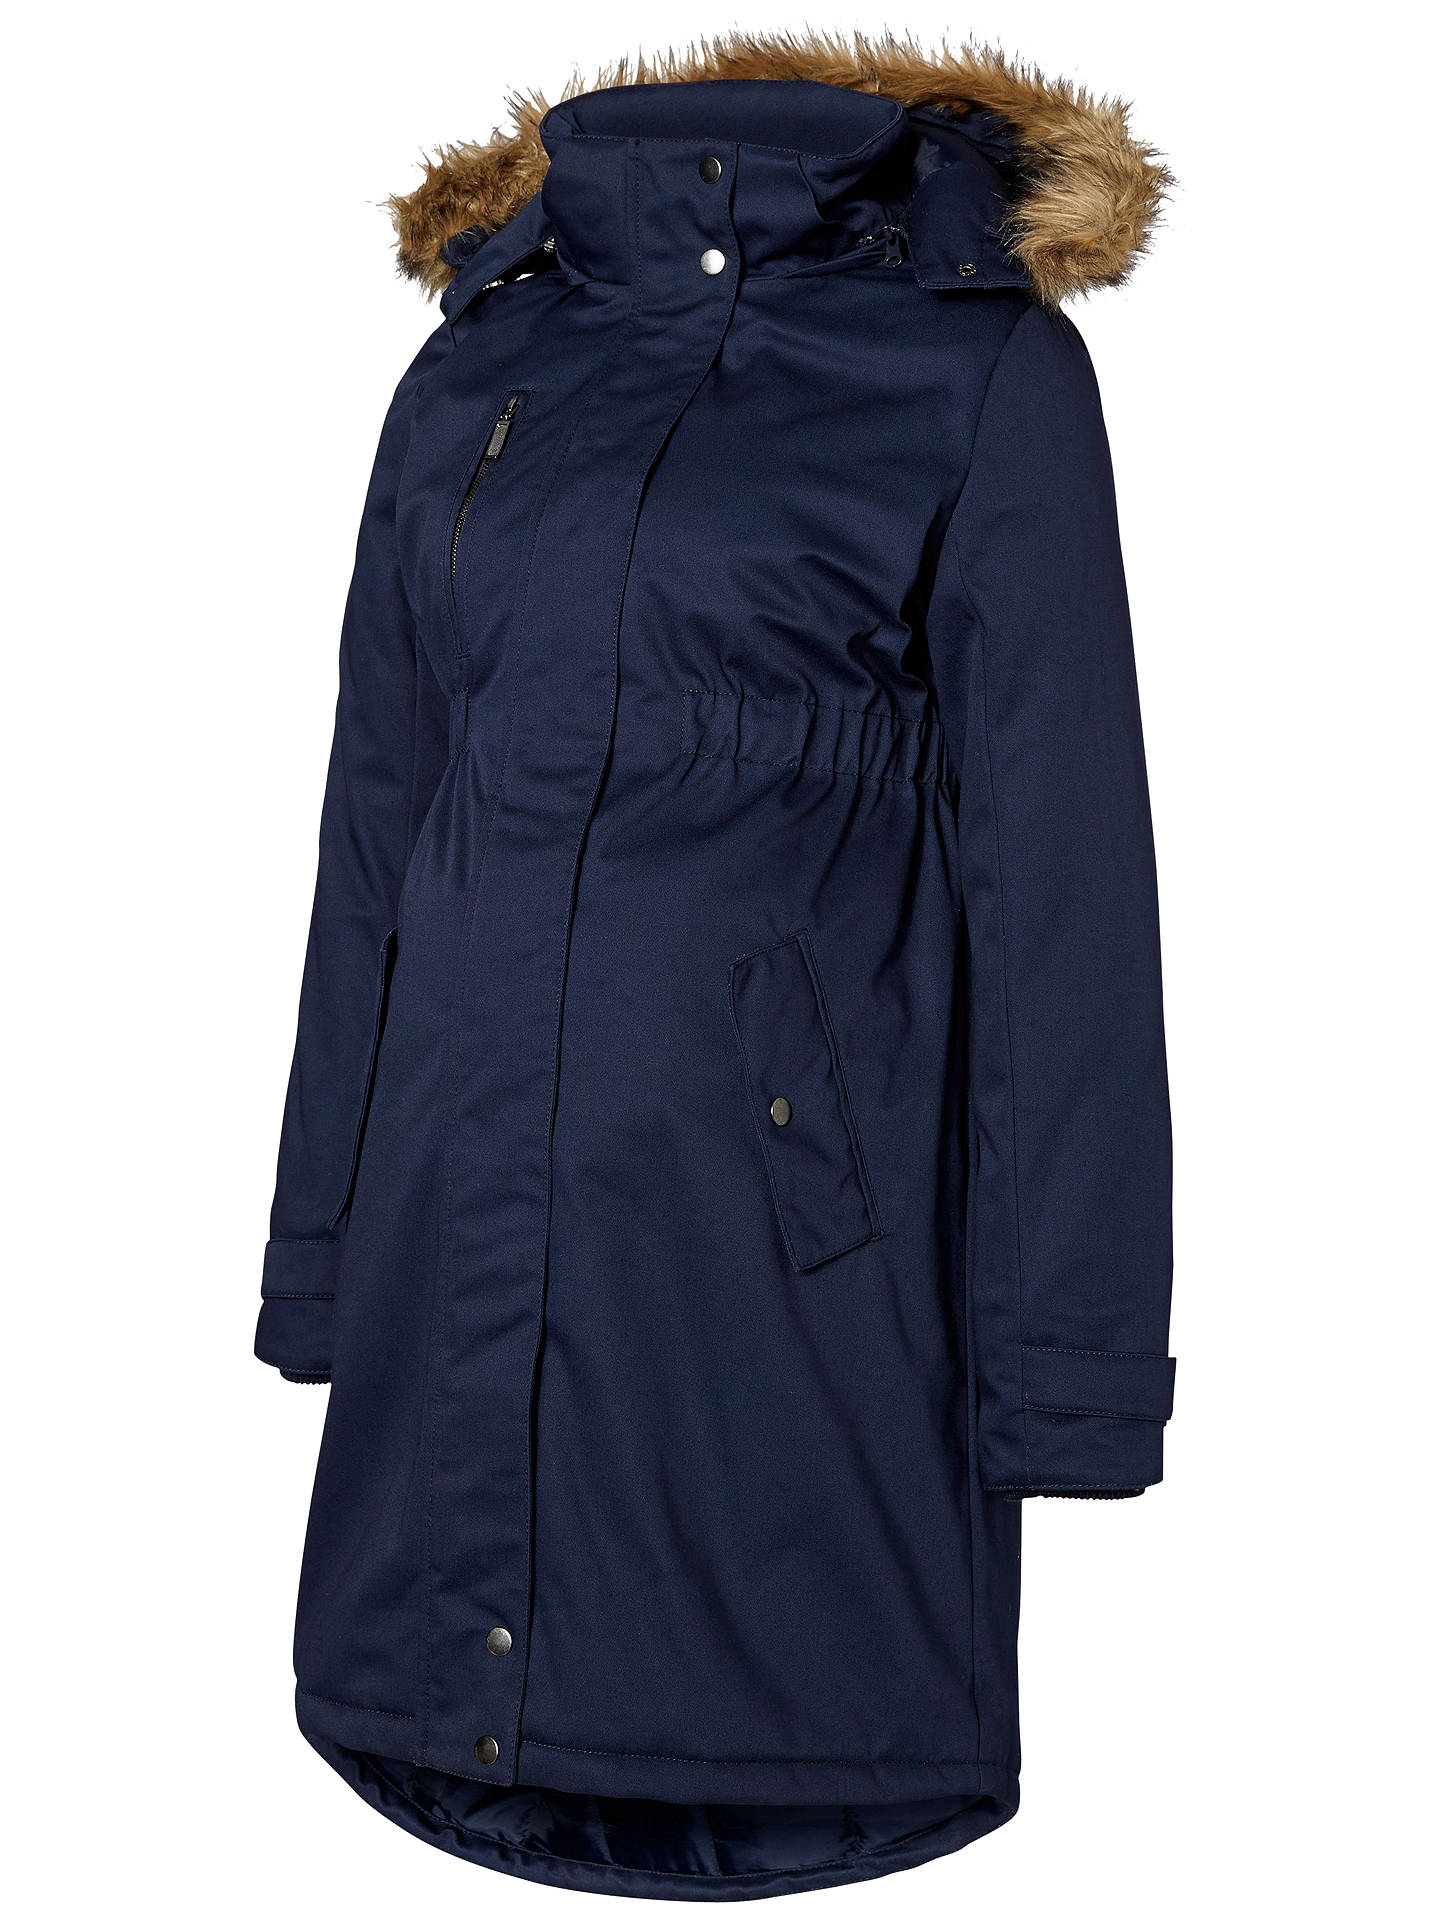 07291fd5d3ac6 Buy Mamalicious Becky Maternity Parka Coat, Navy, S Online at johnlewis.com  ...